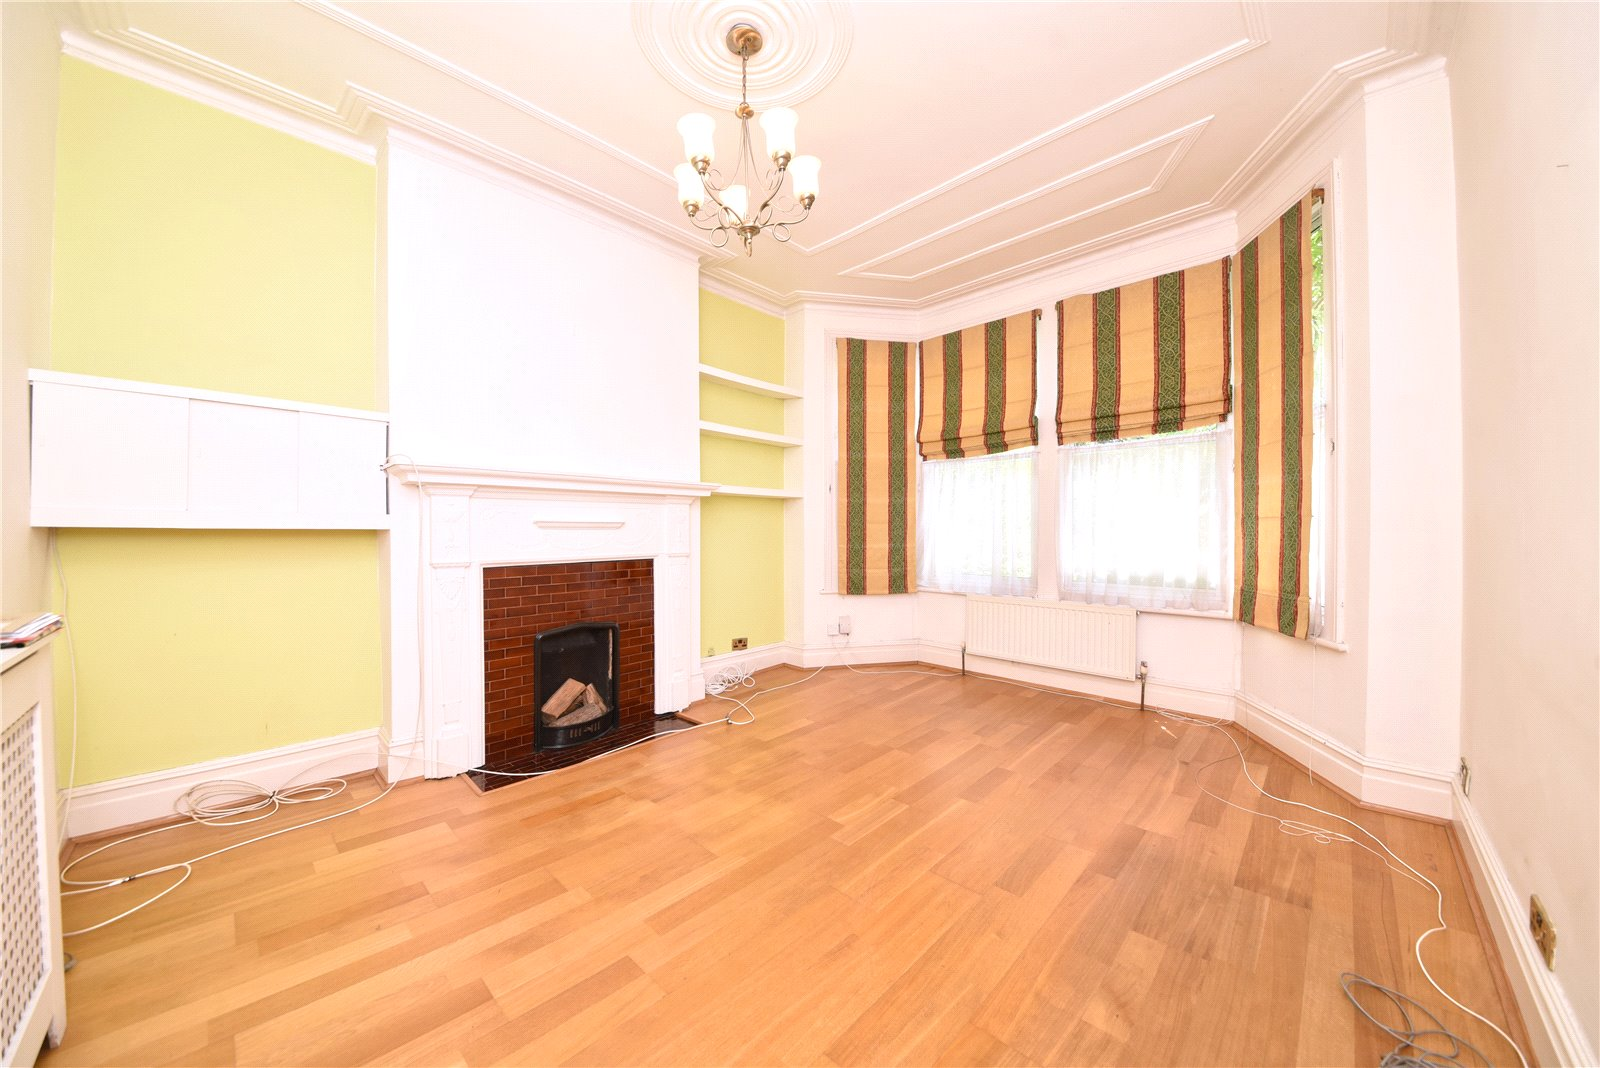 4 bed house for sale in Finchley, N3 2AR 1